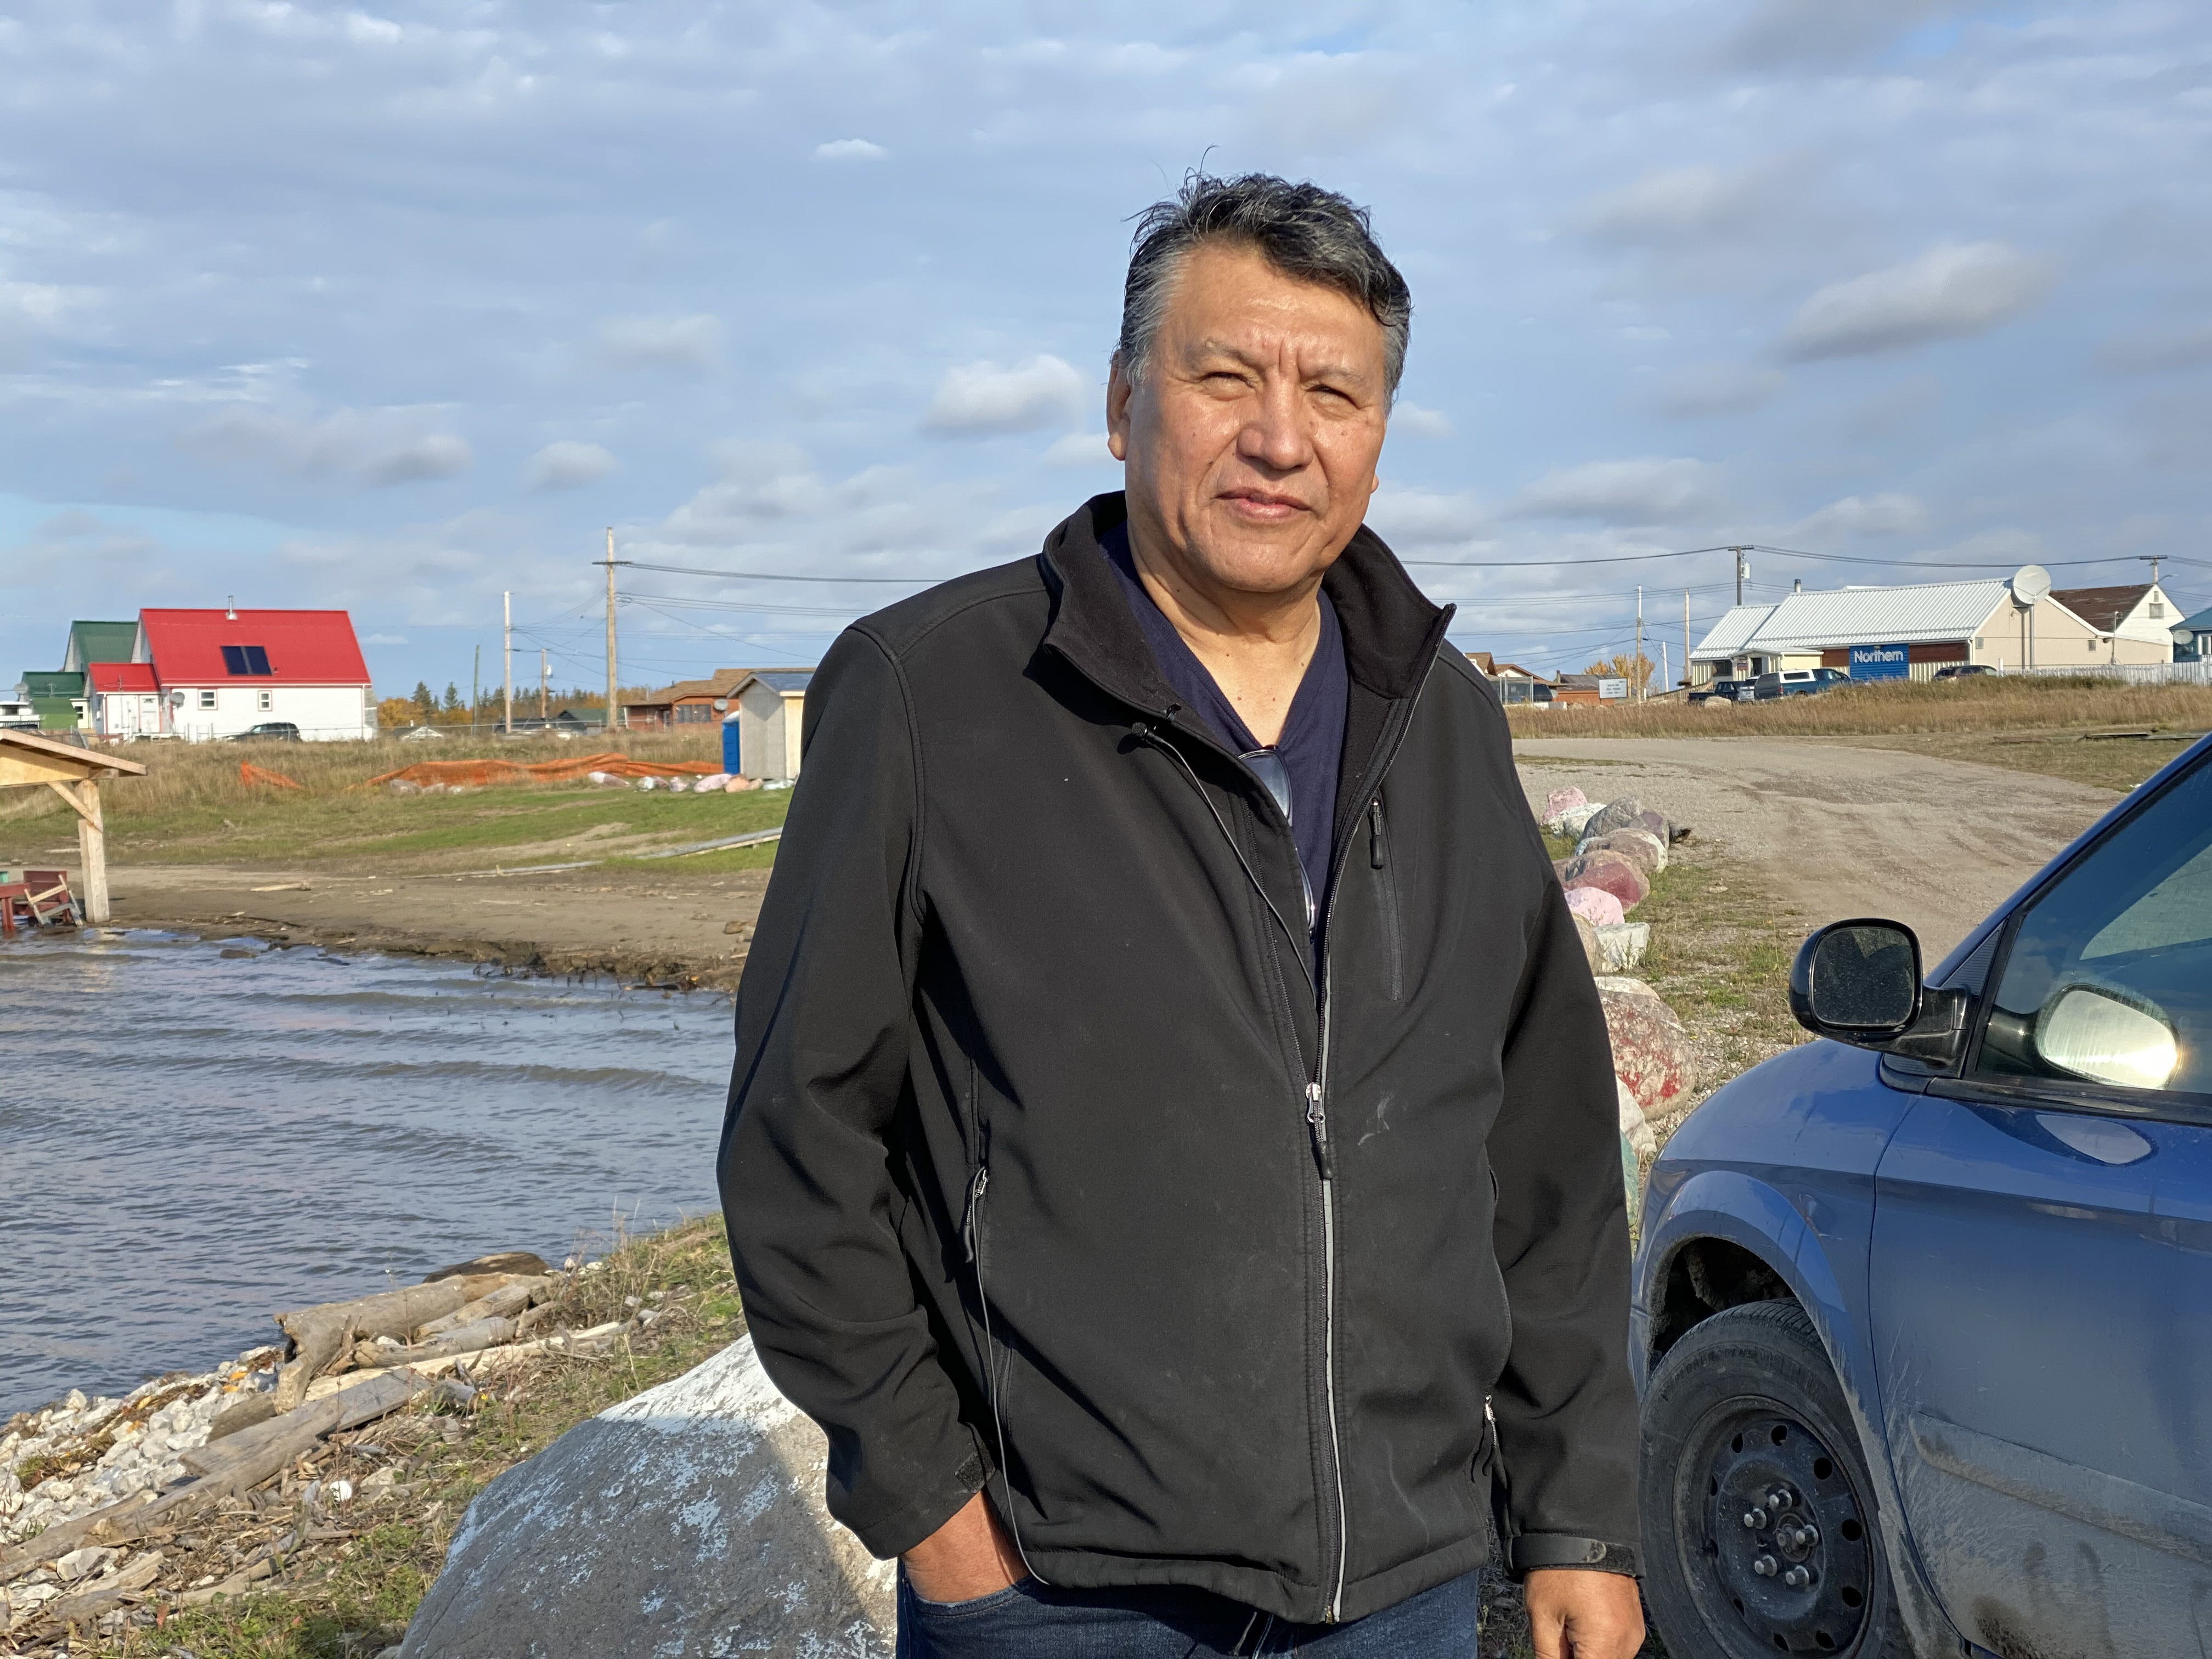 Wilfred Simon holds counselling sessions in Fort Resolution from the front seat of his van. (Graham Shishkov/CBC)